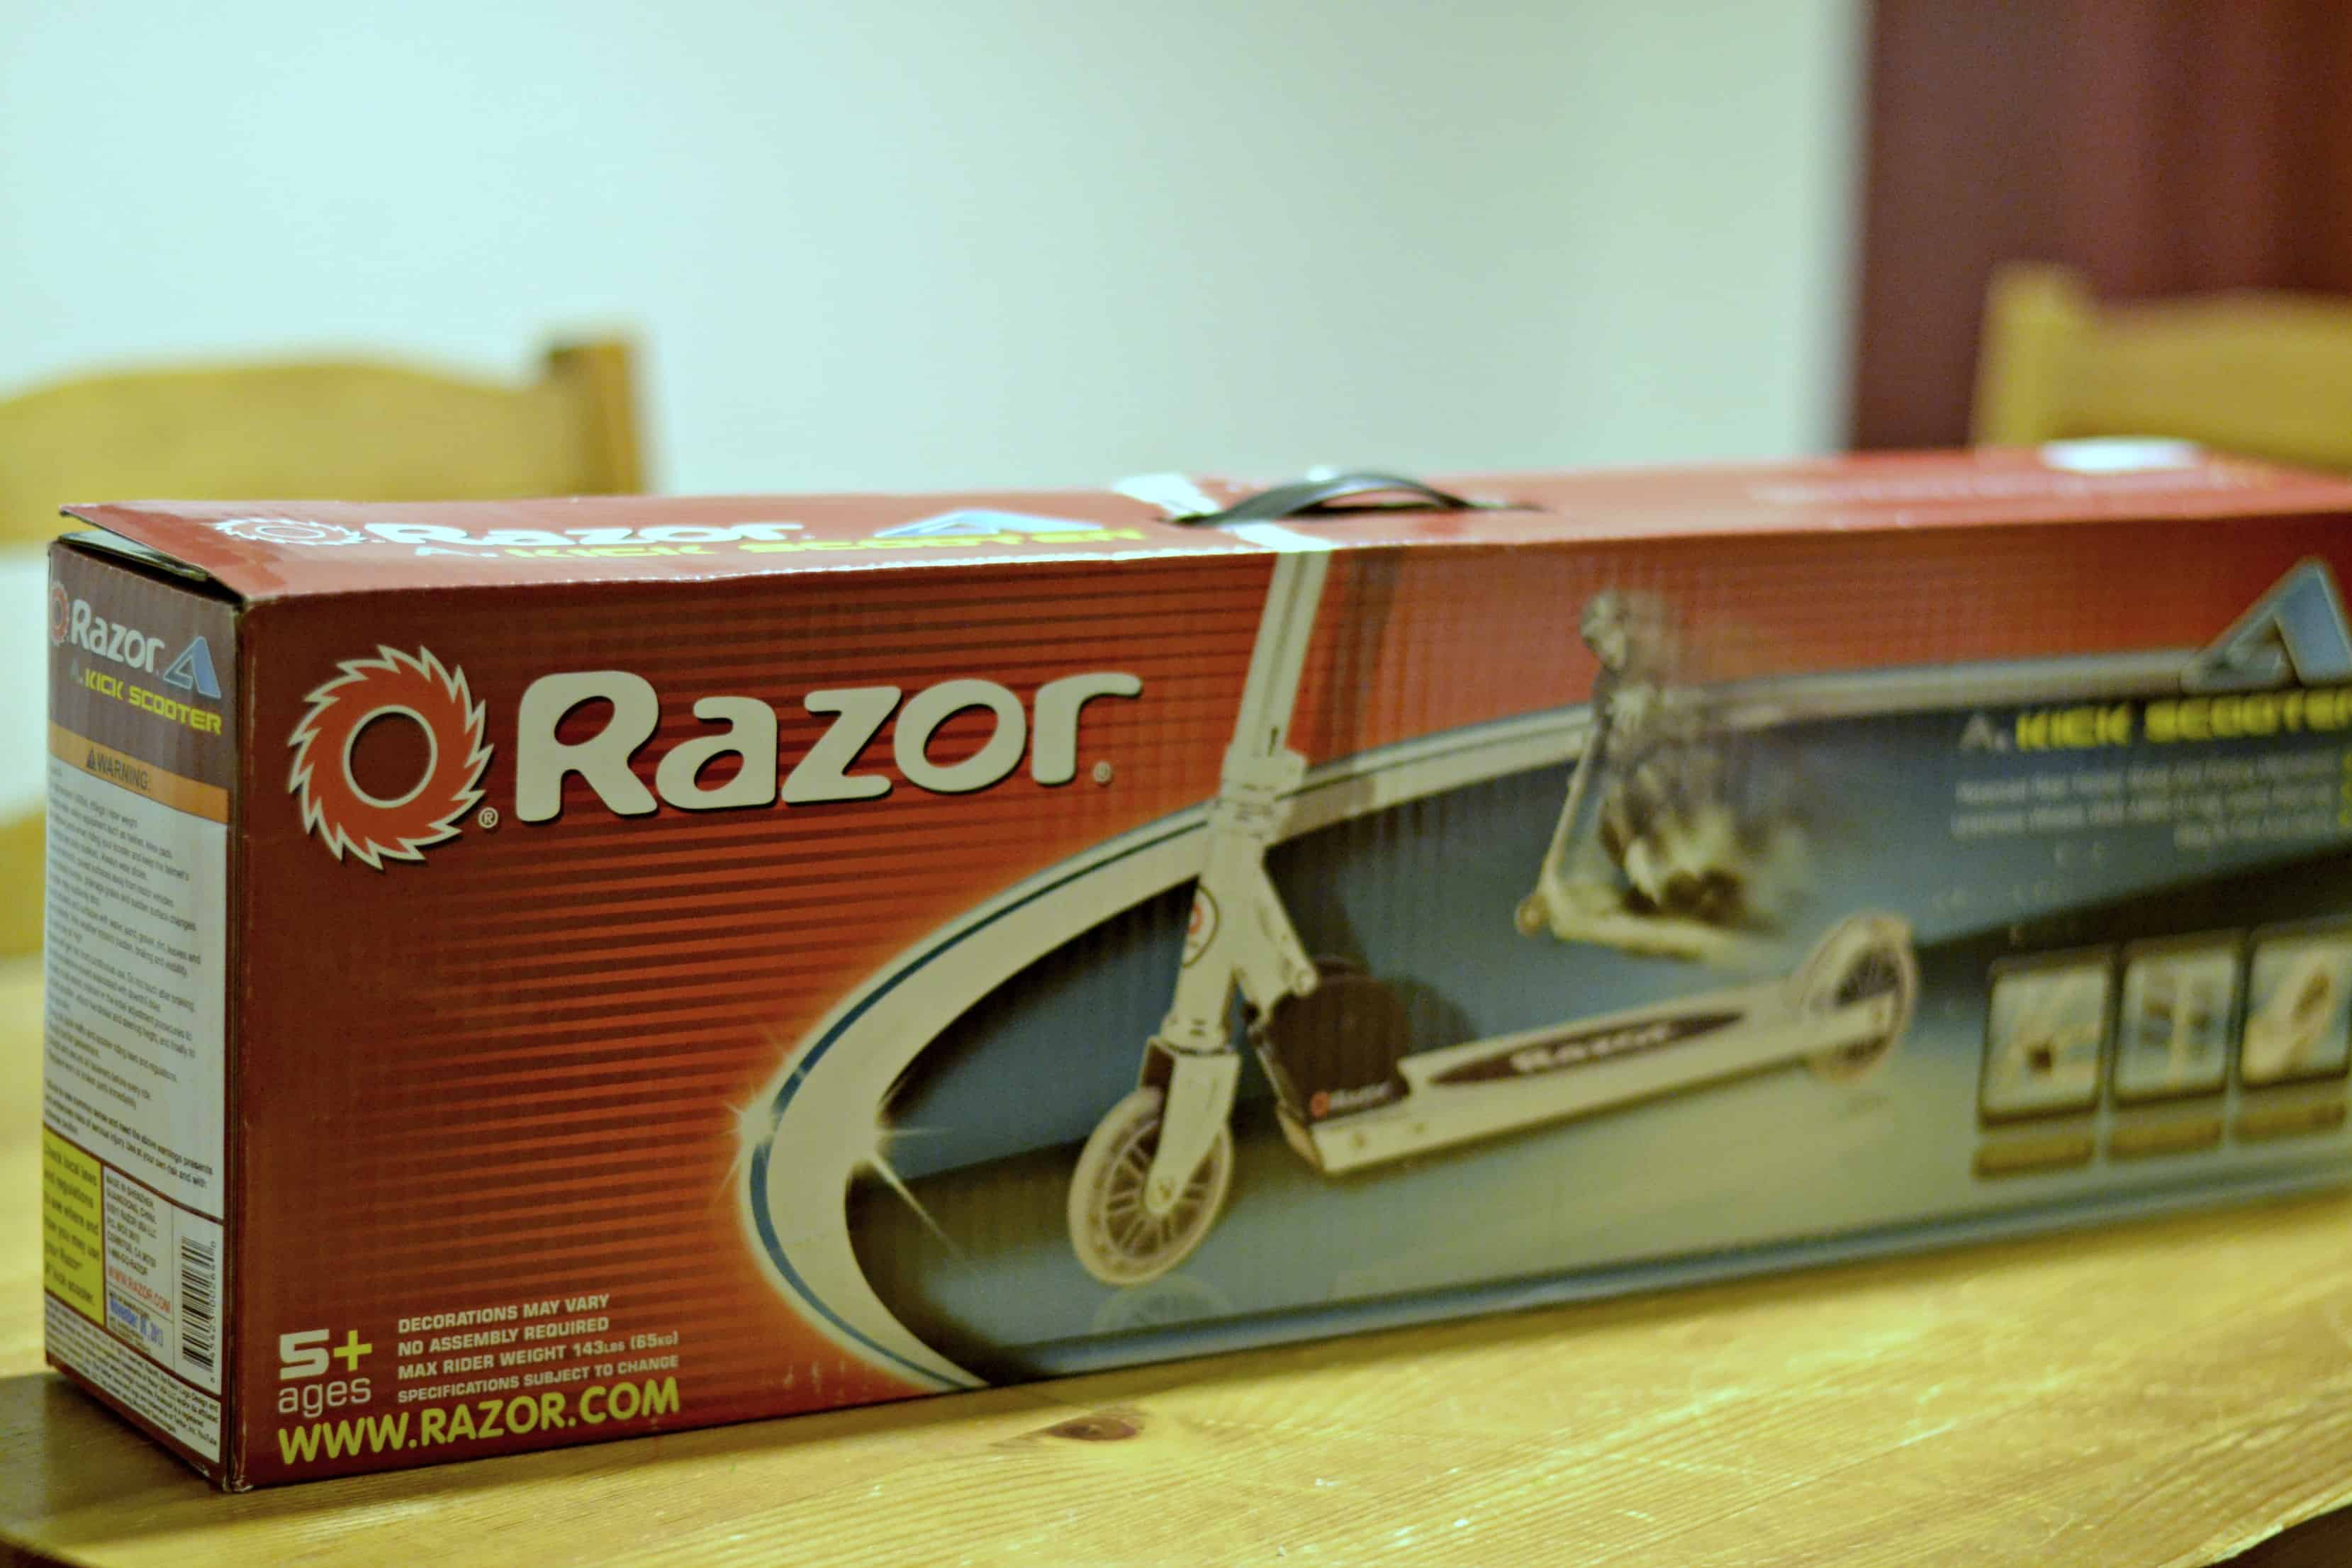 Dazzling 2014 Holiday Get Moving Razor A Kick Scooter Is A Hot Active Toy Razor A Kick Scooter Hats Frugal Active Kick Out On Mls Ntreis Active Kick Out houzz-03 Active Kick Out